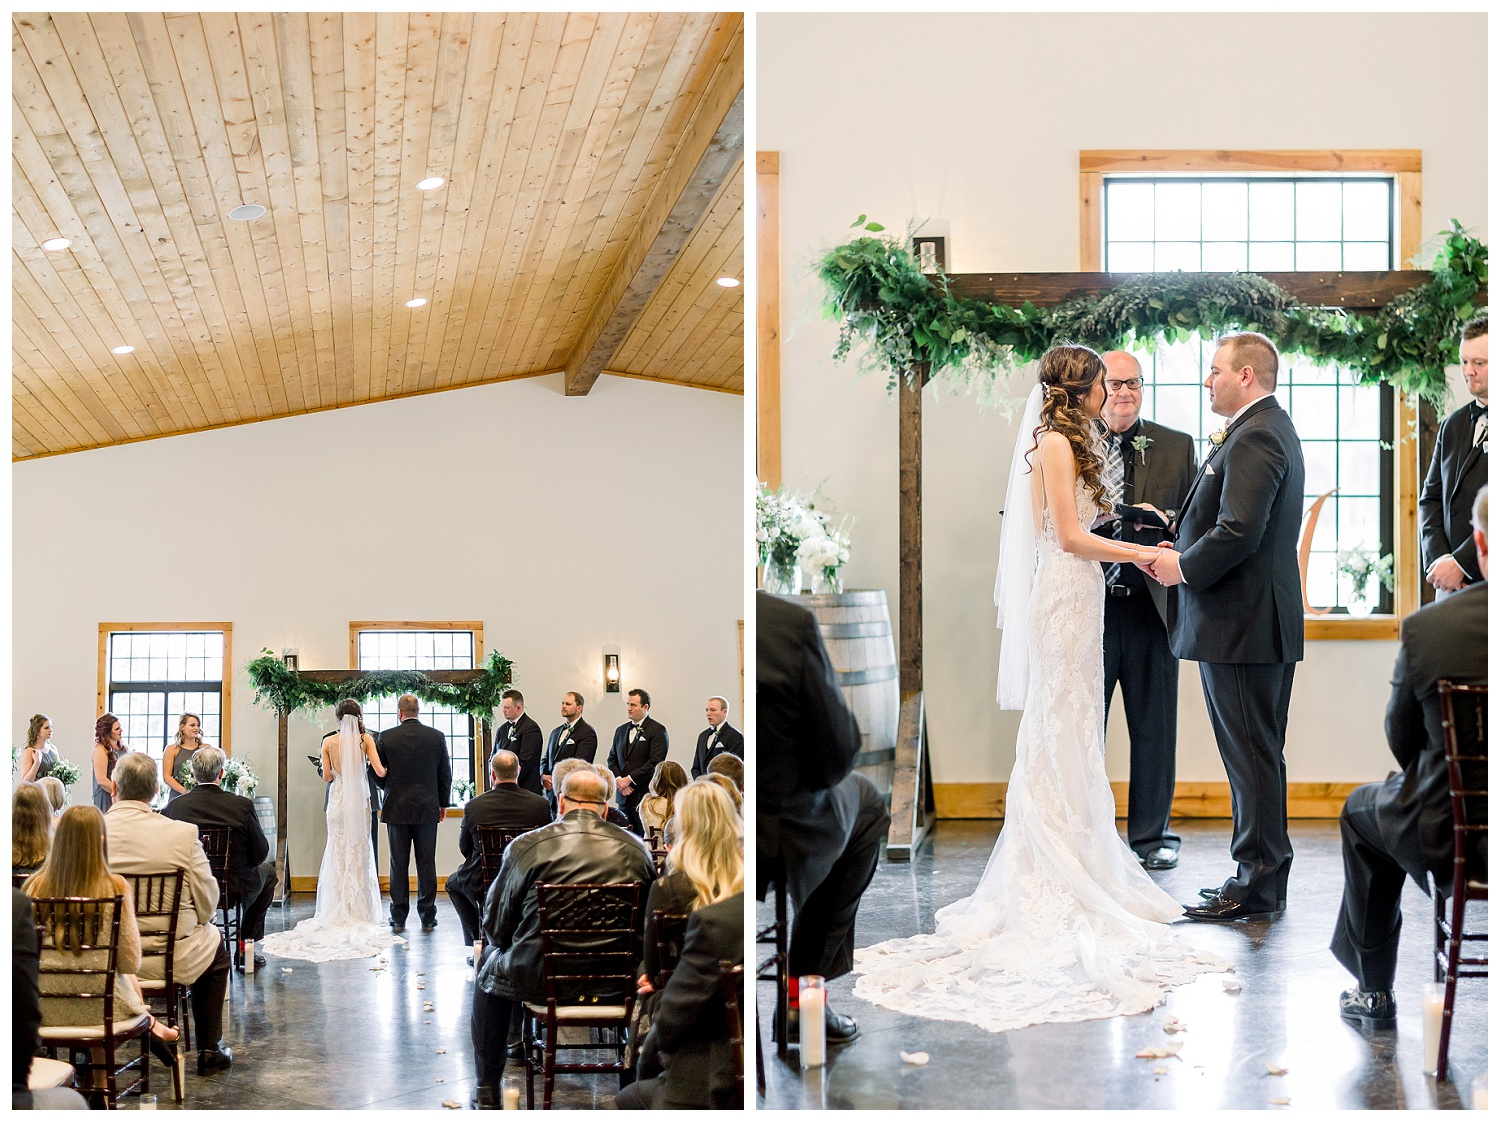 Classic indoor wedding ceremony at Willow Creek